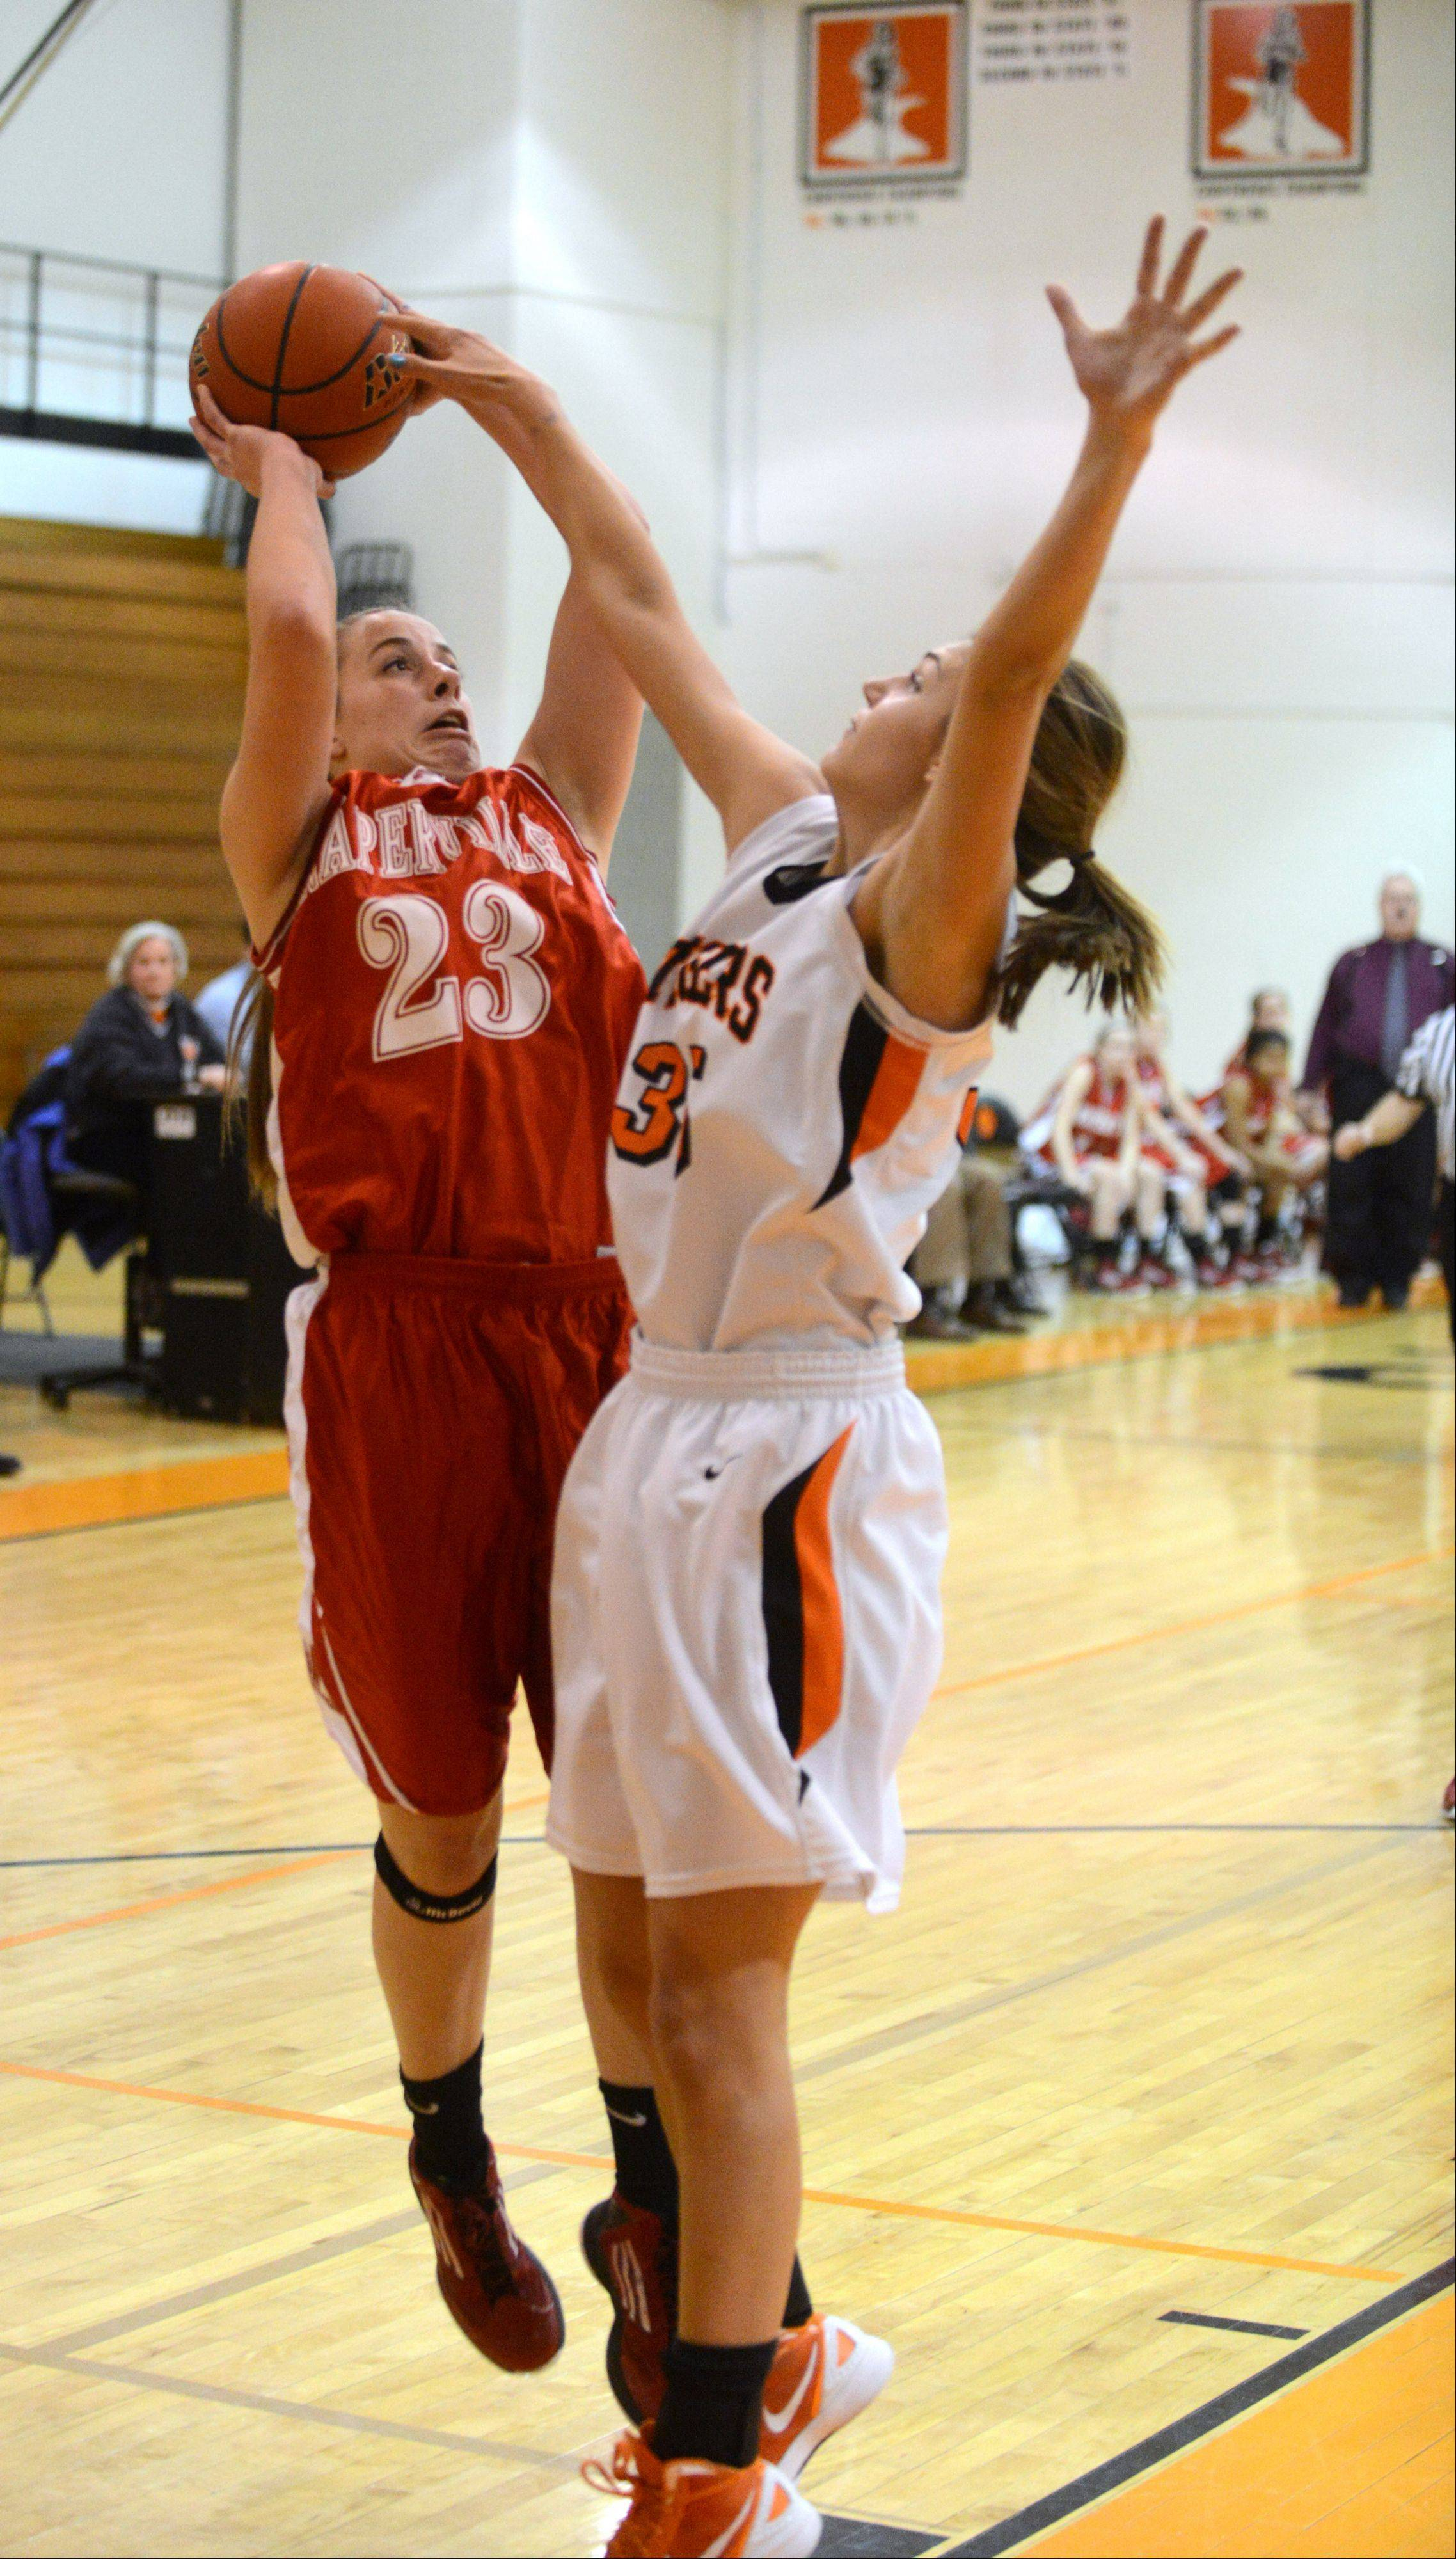 Laura Dierking of Naperville Central puts up a shot over Allie Zappia of Wheaton Warrenville South during the Naperville Central at Wheaton Warrenville South girls basketball game Thursday.